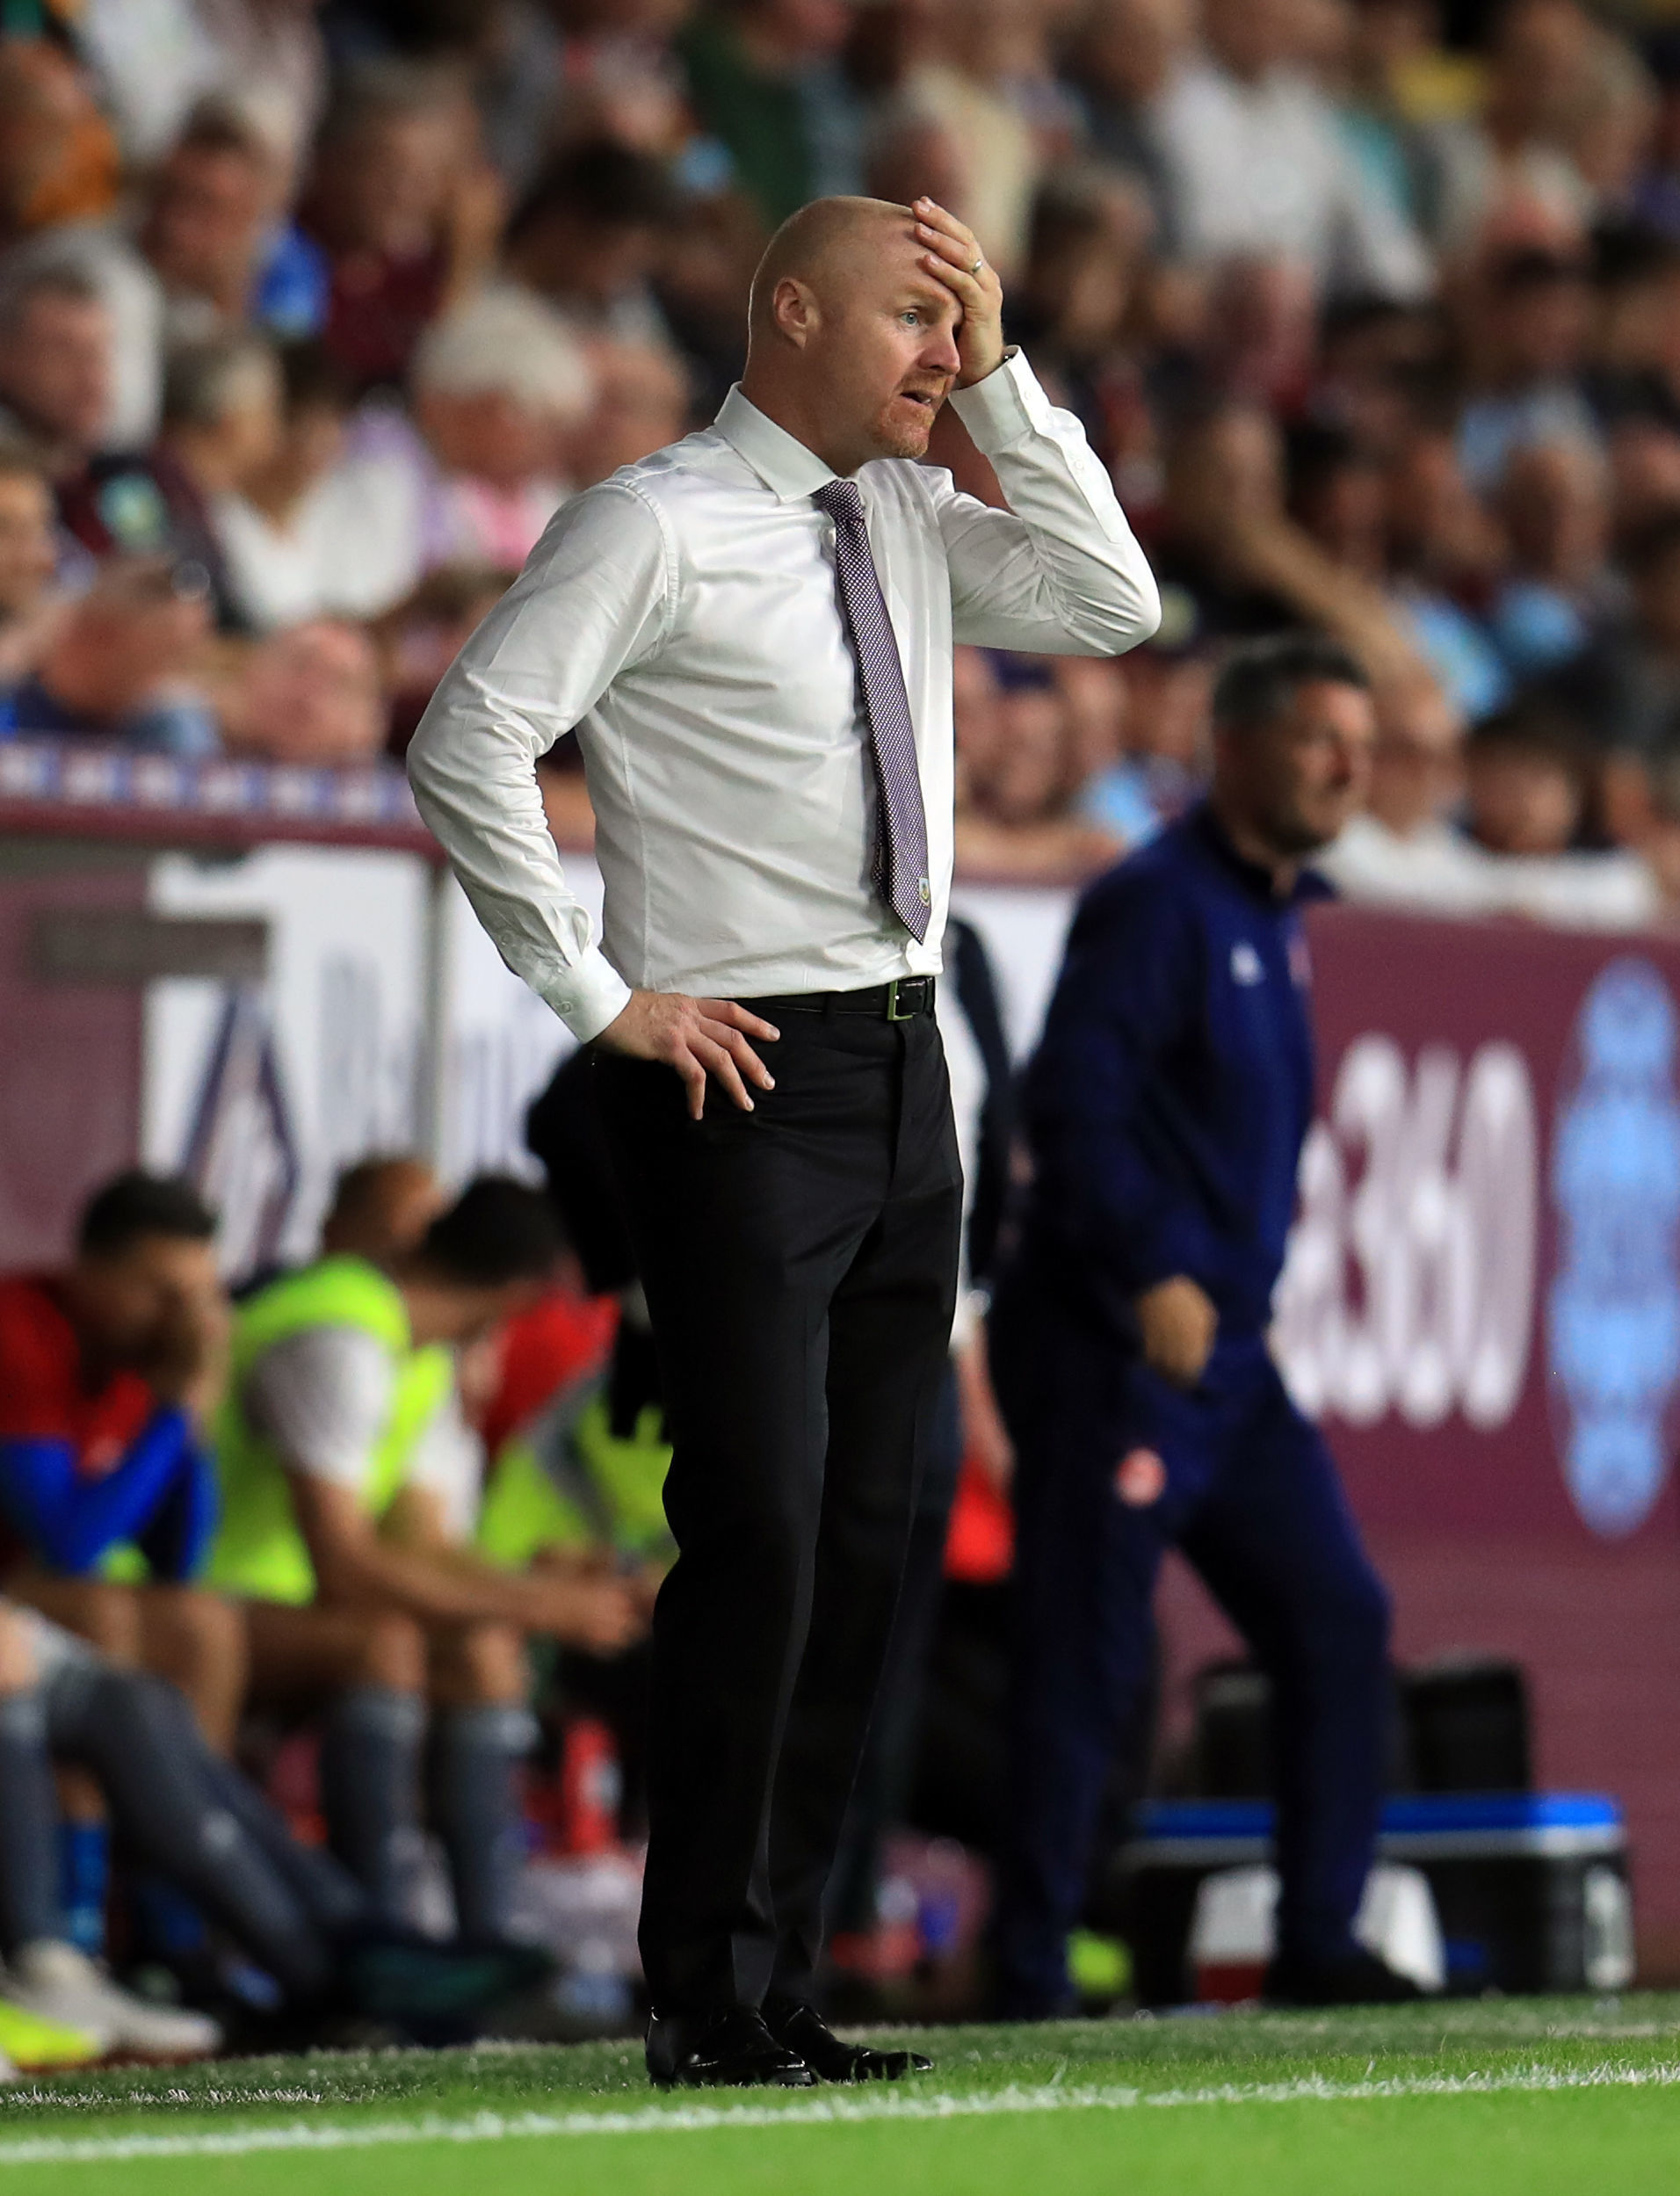 Burnley manager Sean Dyche during the UEFA Europa League, Second Qualifying Round, Second Leg match at Turf Moor, Burnley. PRESS ASSOCIATION Photo, Picture date: Thursday August 2, 2018. See PA story SOCCER Burnley. Photo credit should read: